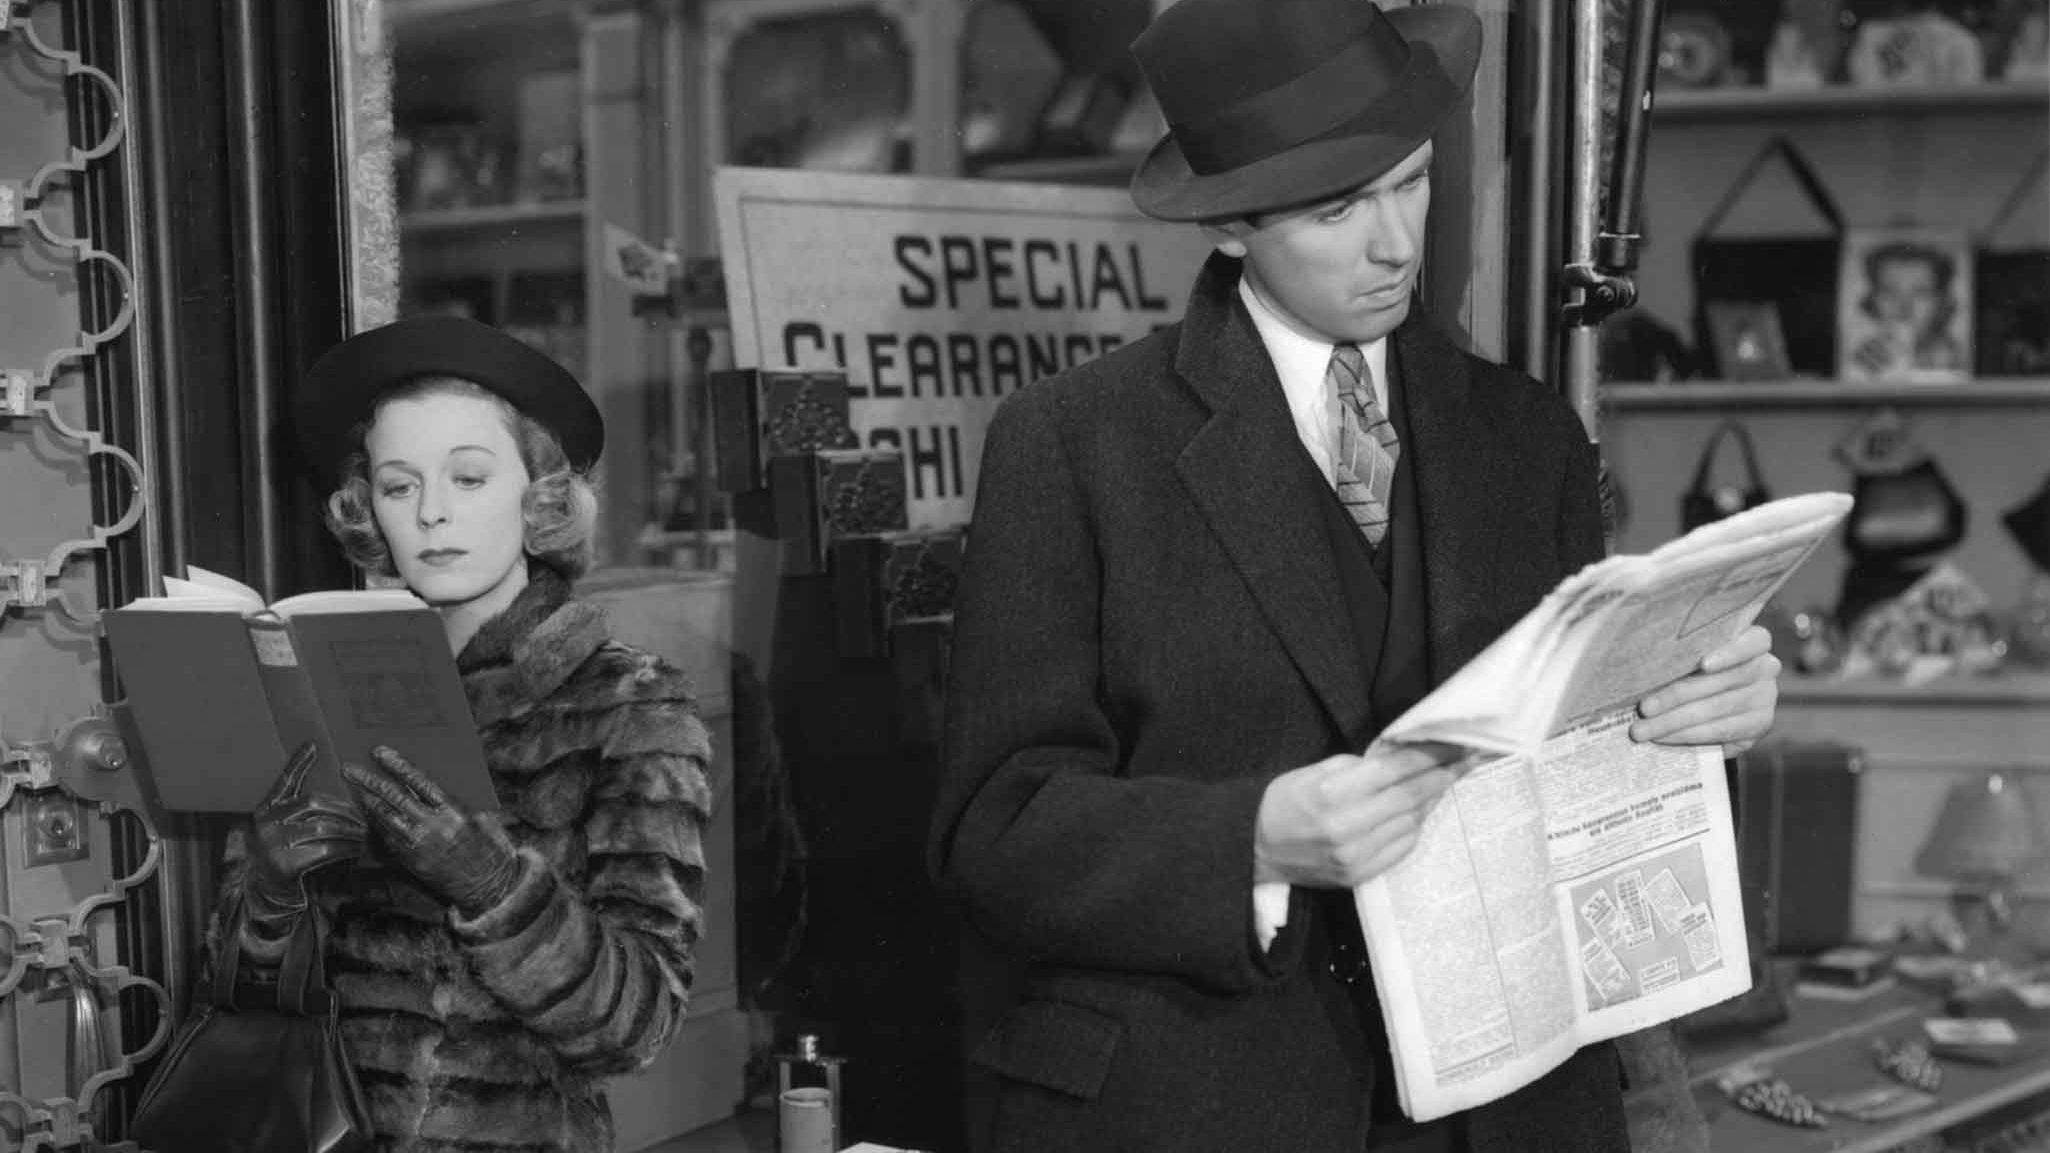 #23) The Shop Around the Corner - (1940 - Ernst Lubitsch)